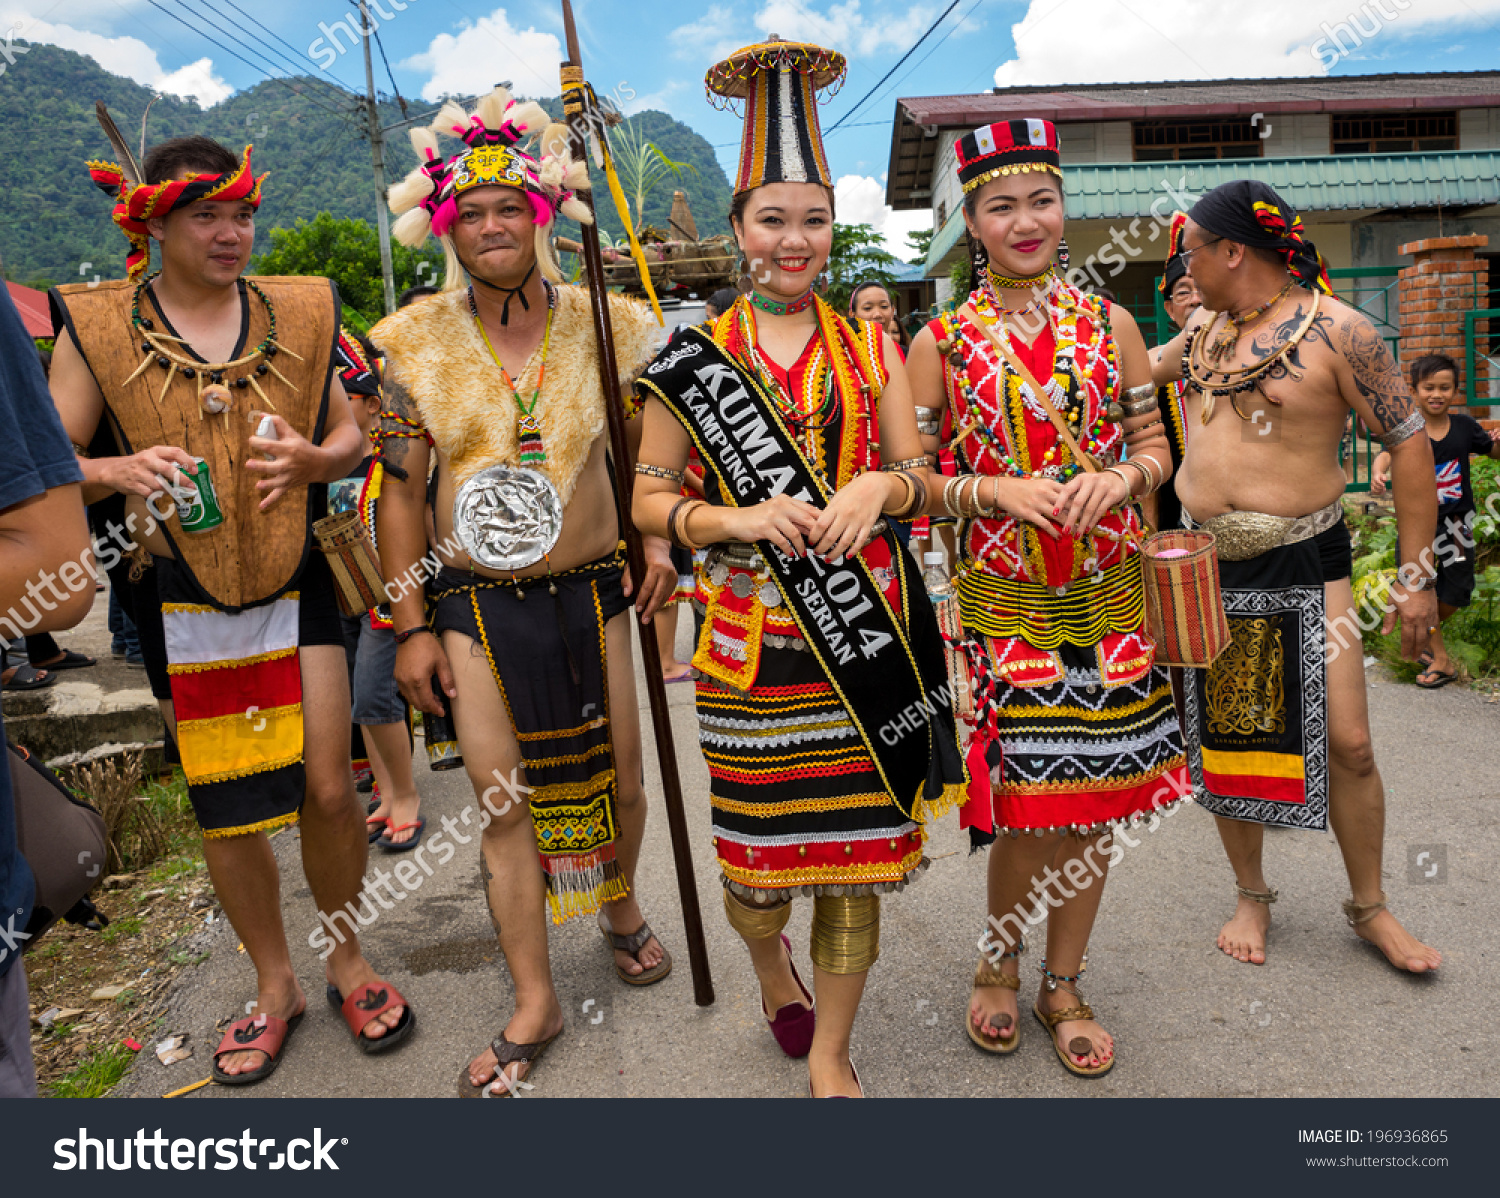 definition of natives of sarawak Definitions of sarawak, synonyms, antonyms, derivatives of sarawak, analogical dictionary of sarawak (english.